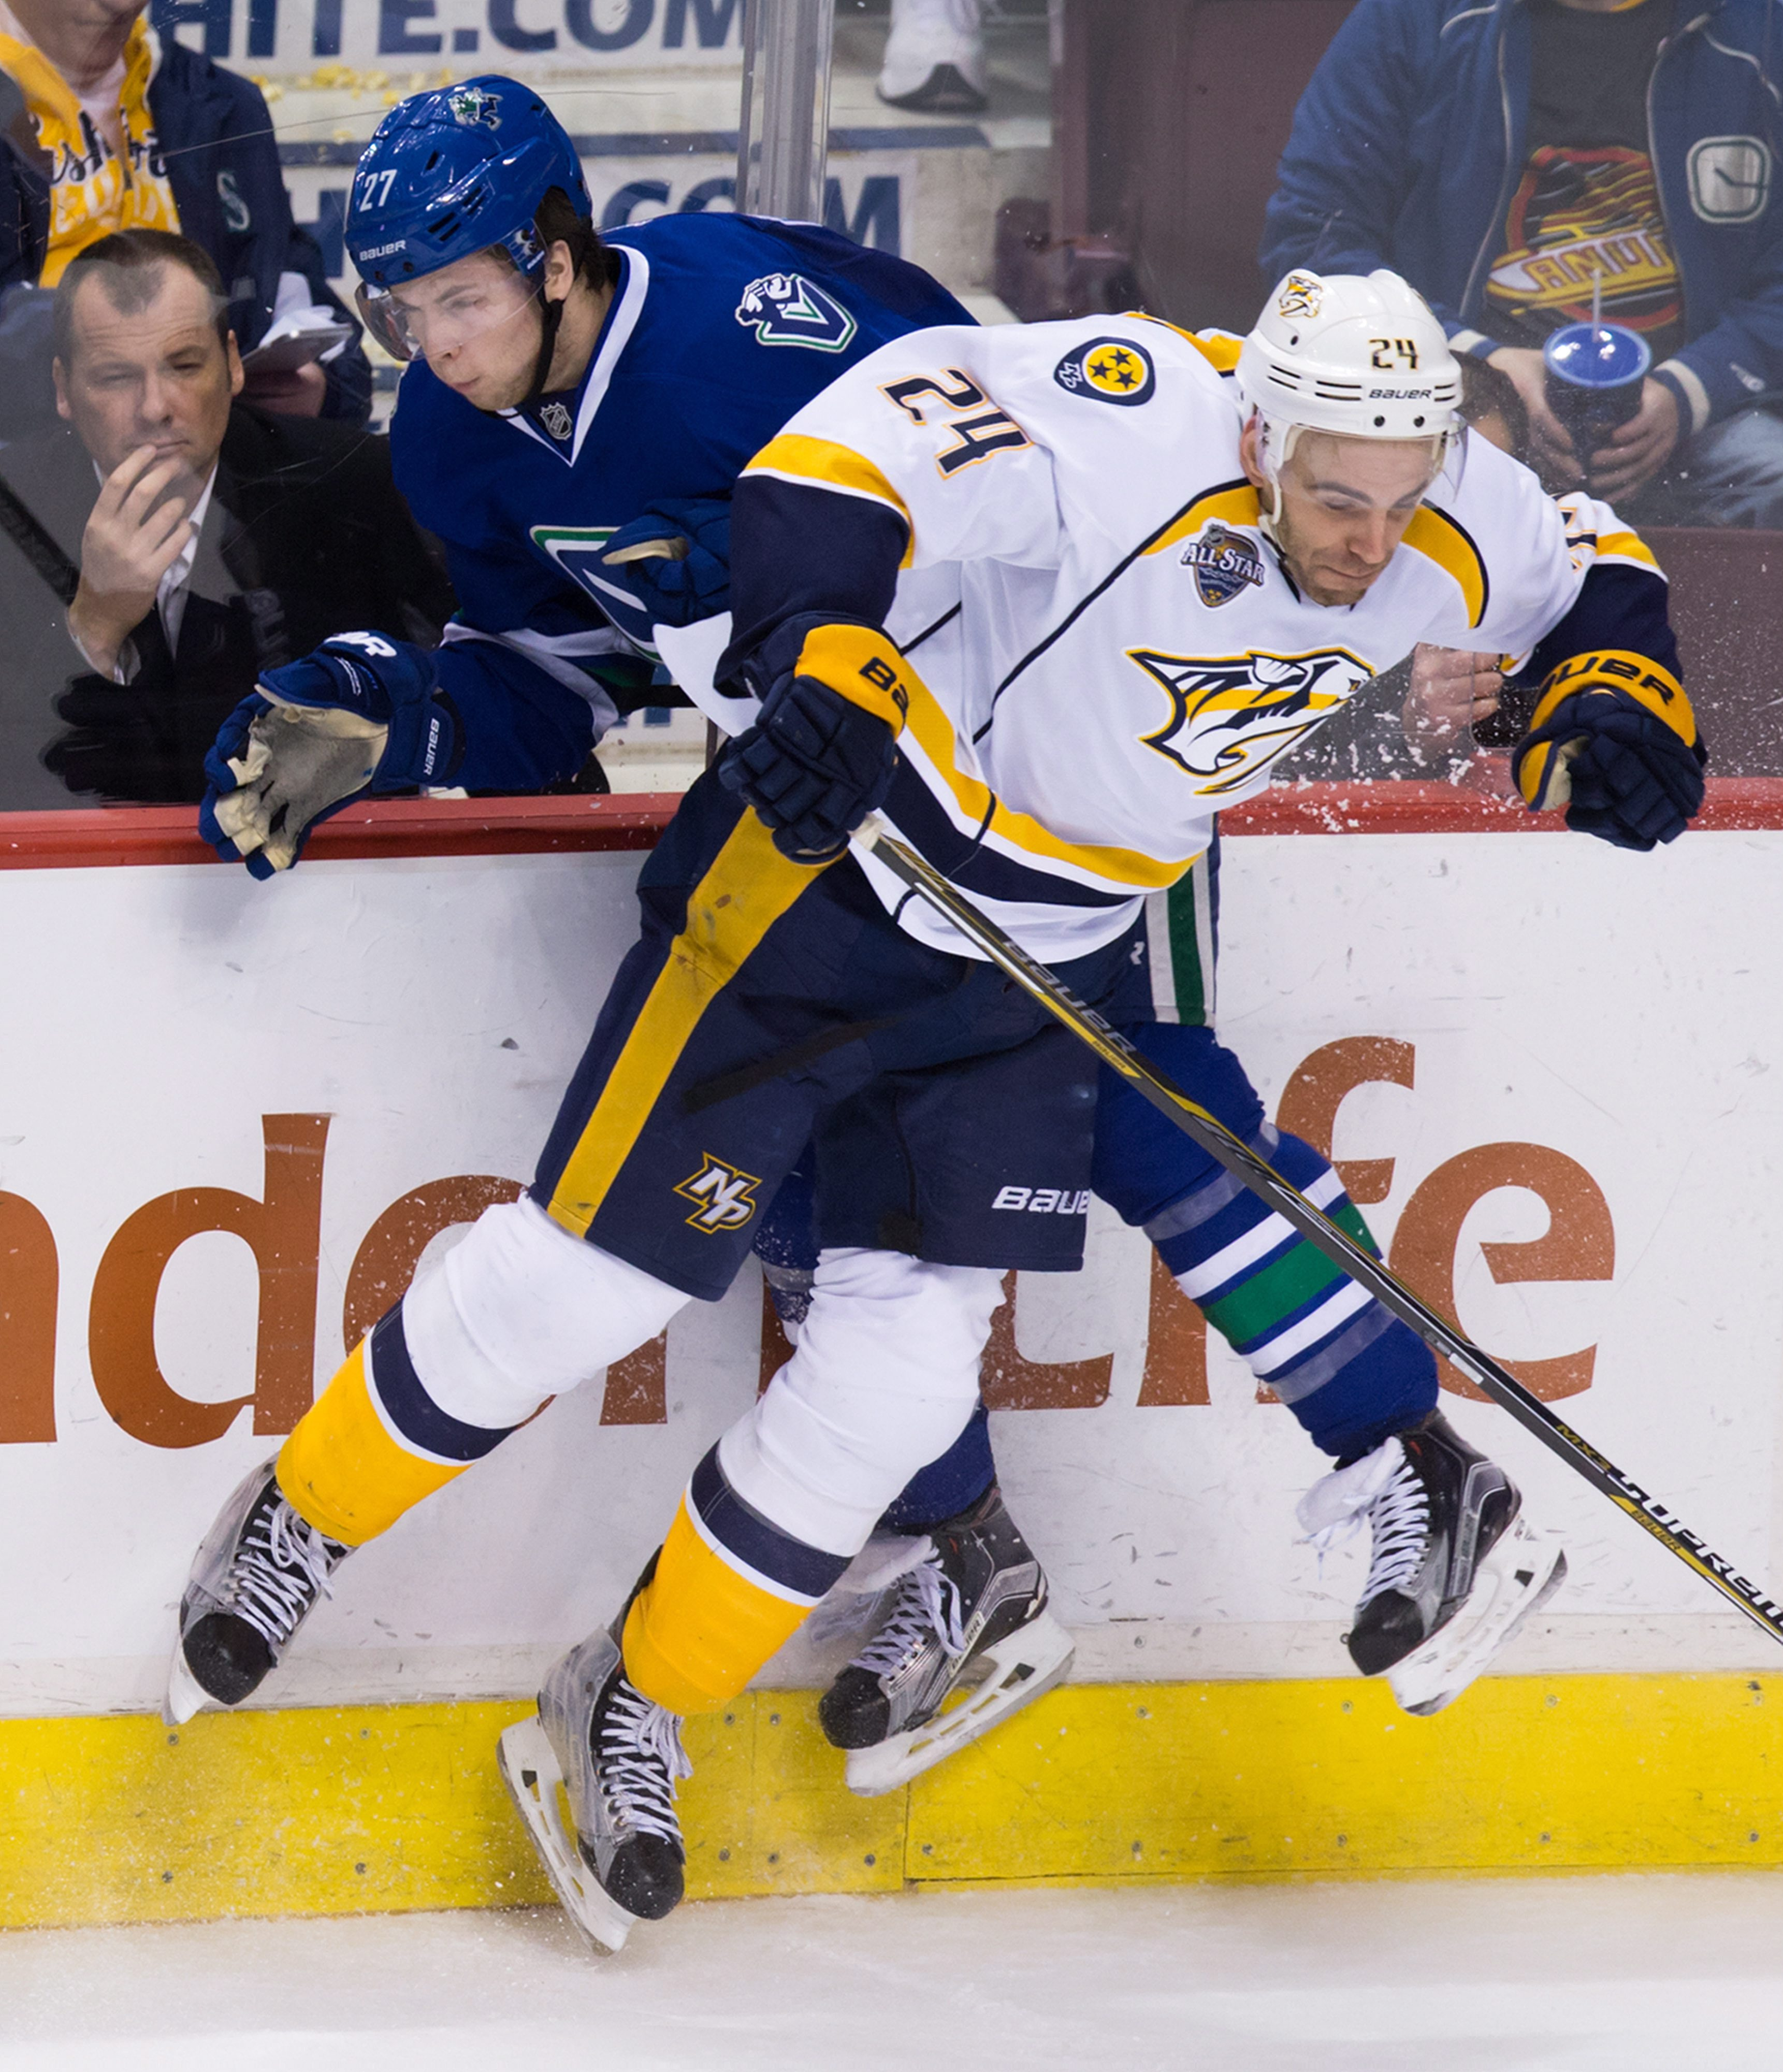 Vancouver Canucks' Ben Hutton, back, and Nashville Predators' Eric Nystrom collide during the third period of an NHL hockey game Tuesday, Jan 26, 2016, in Vancouver, British Columbia. (Darryl Dyck/The Canadian Press via AP)